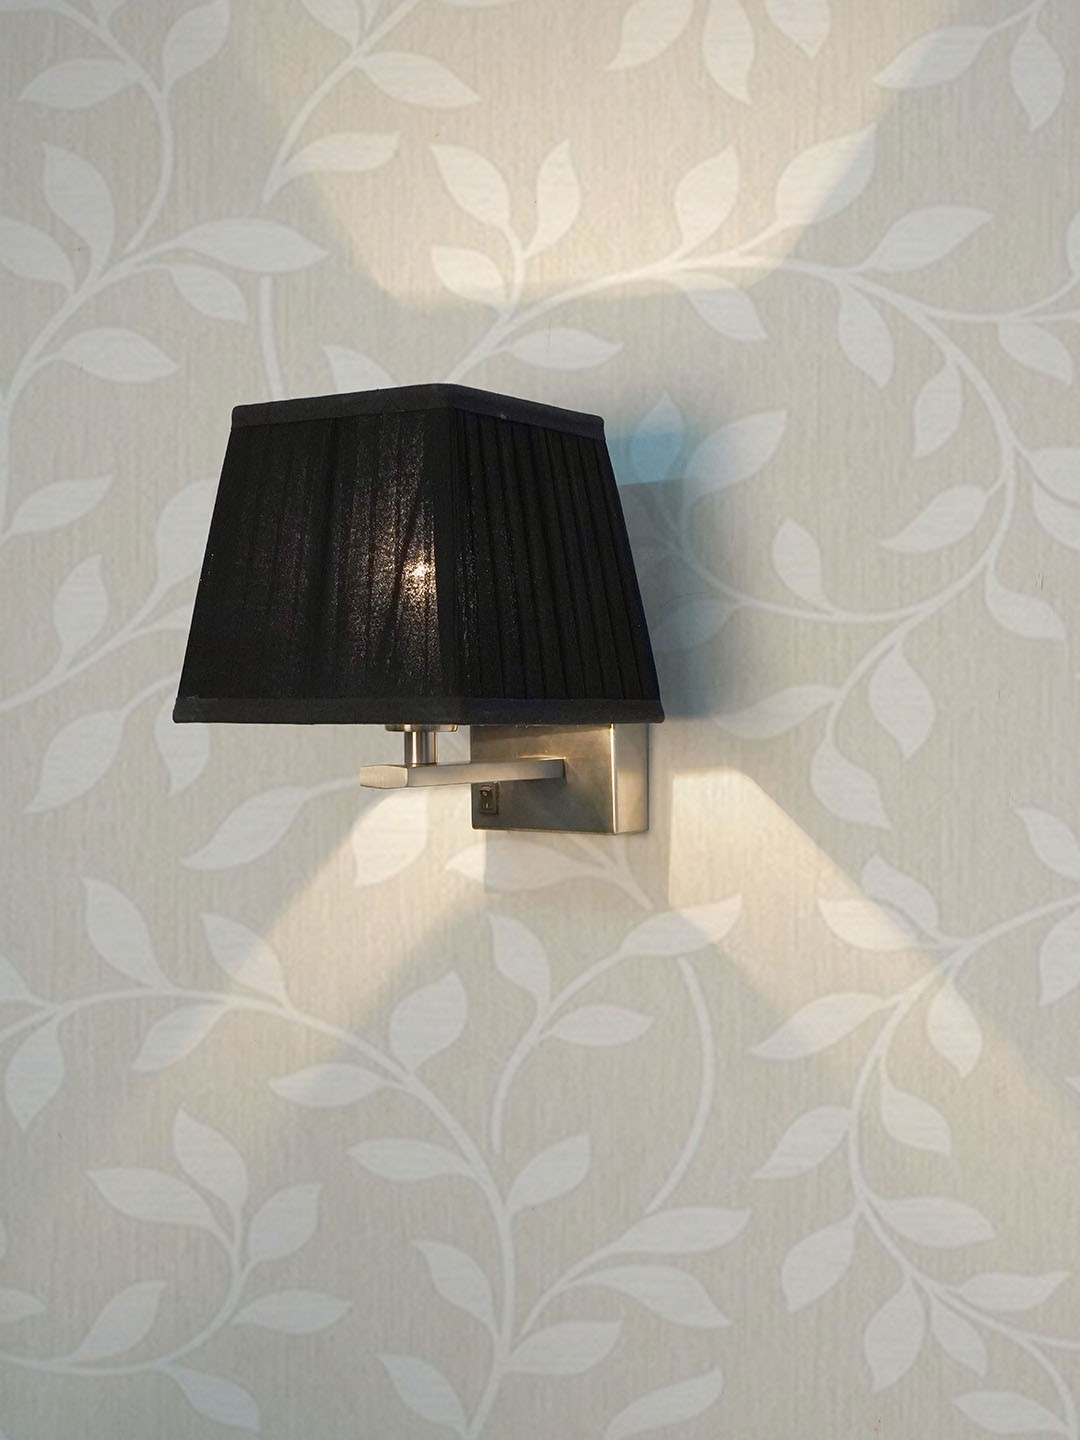 Satin Steel Bedside Wall Light with Black Pleated Square Fabric Shade